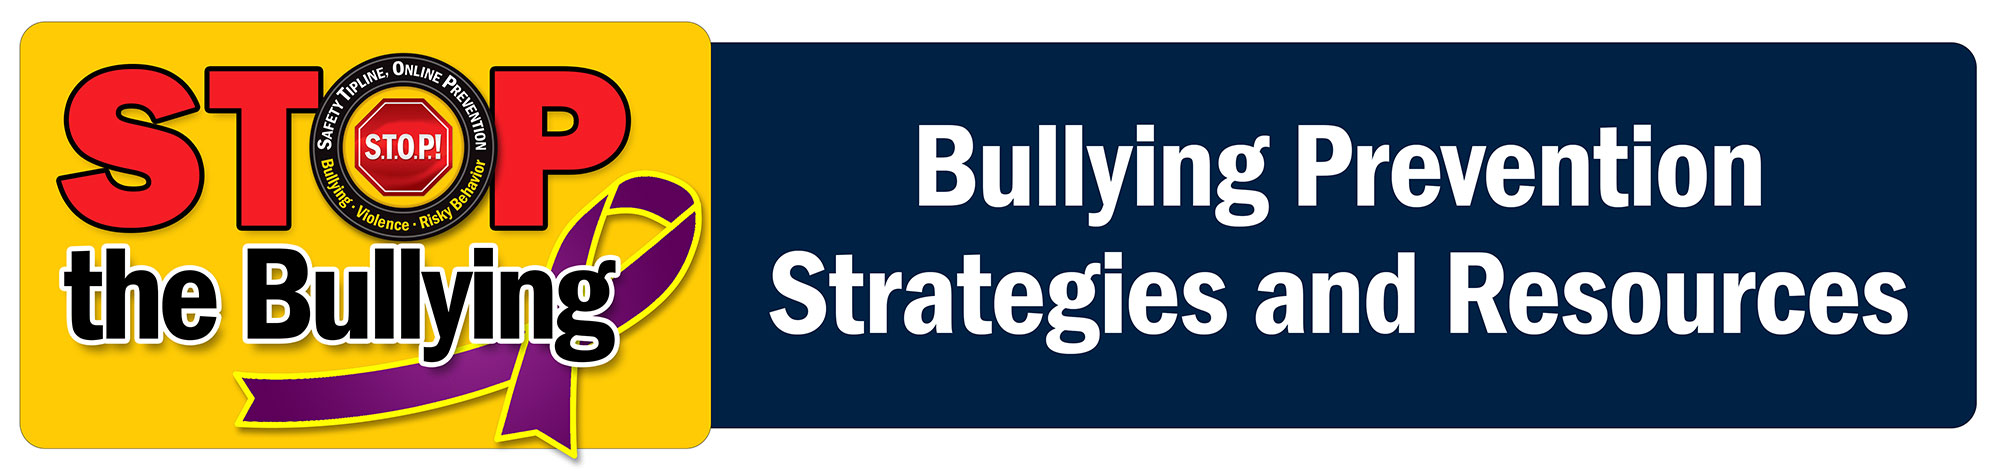 SSI Bullying Stop the Bullying Header